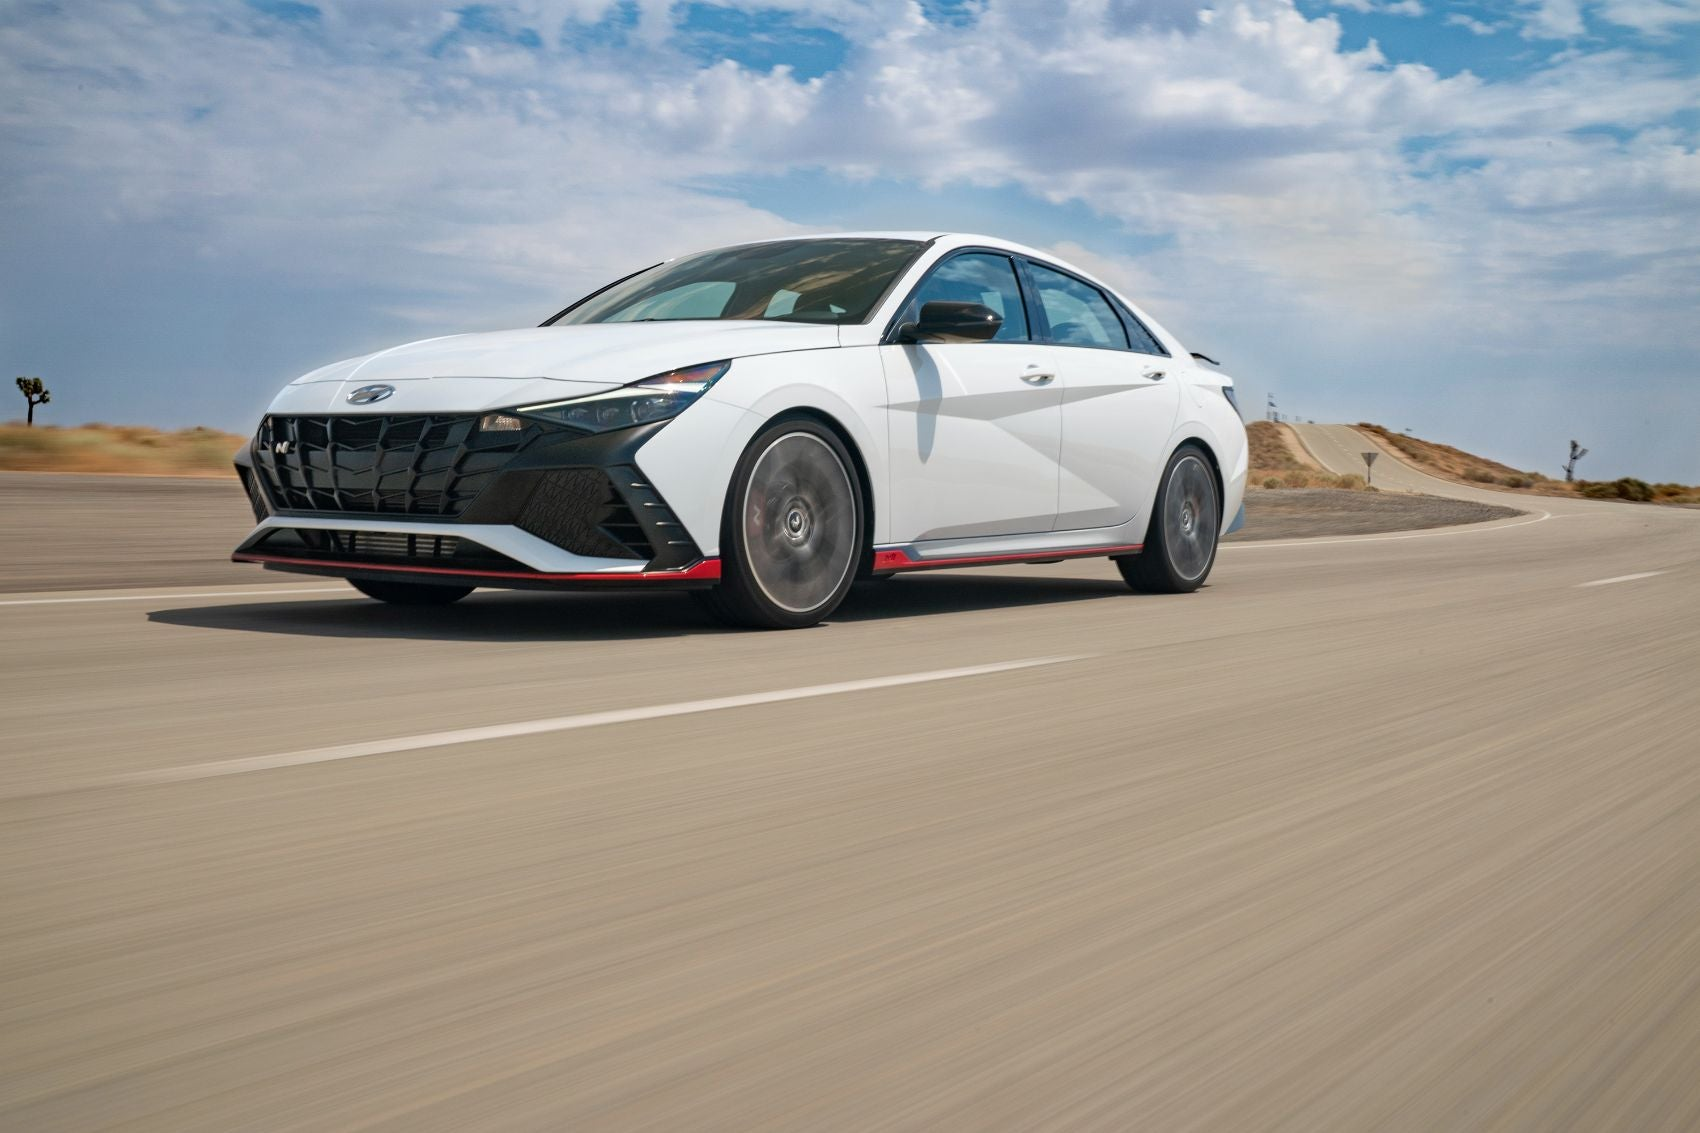 2022 Hyundai Elantra N: Roaring to the Spotlight With a Bevy of Ingenious Tech